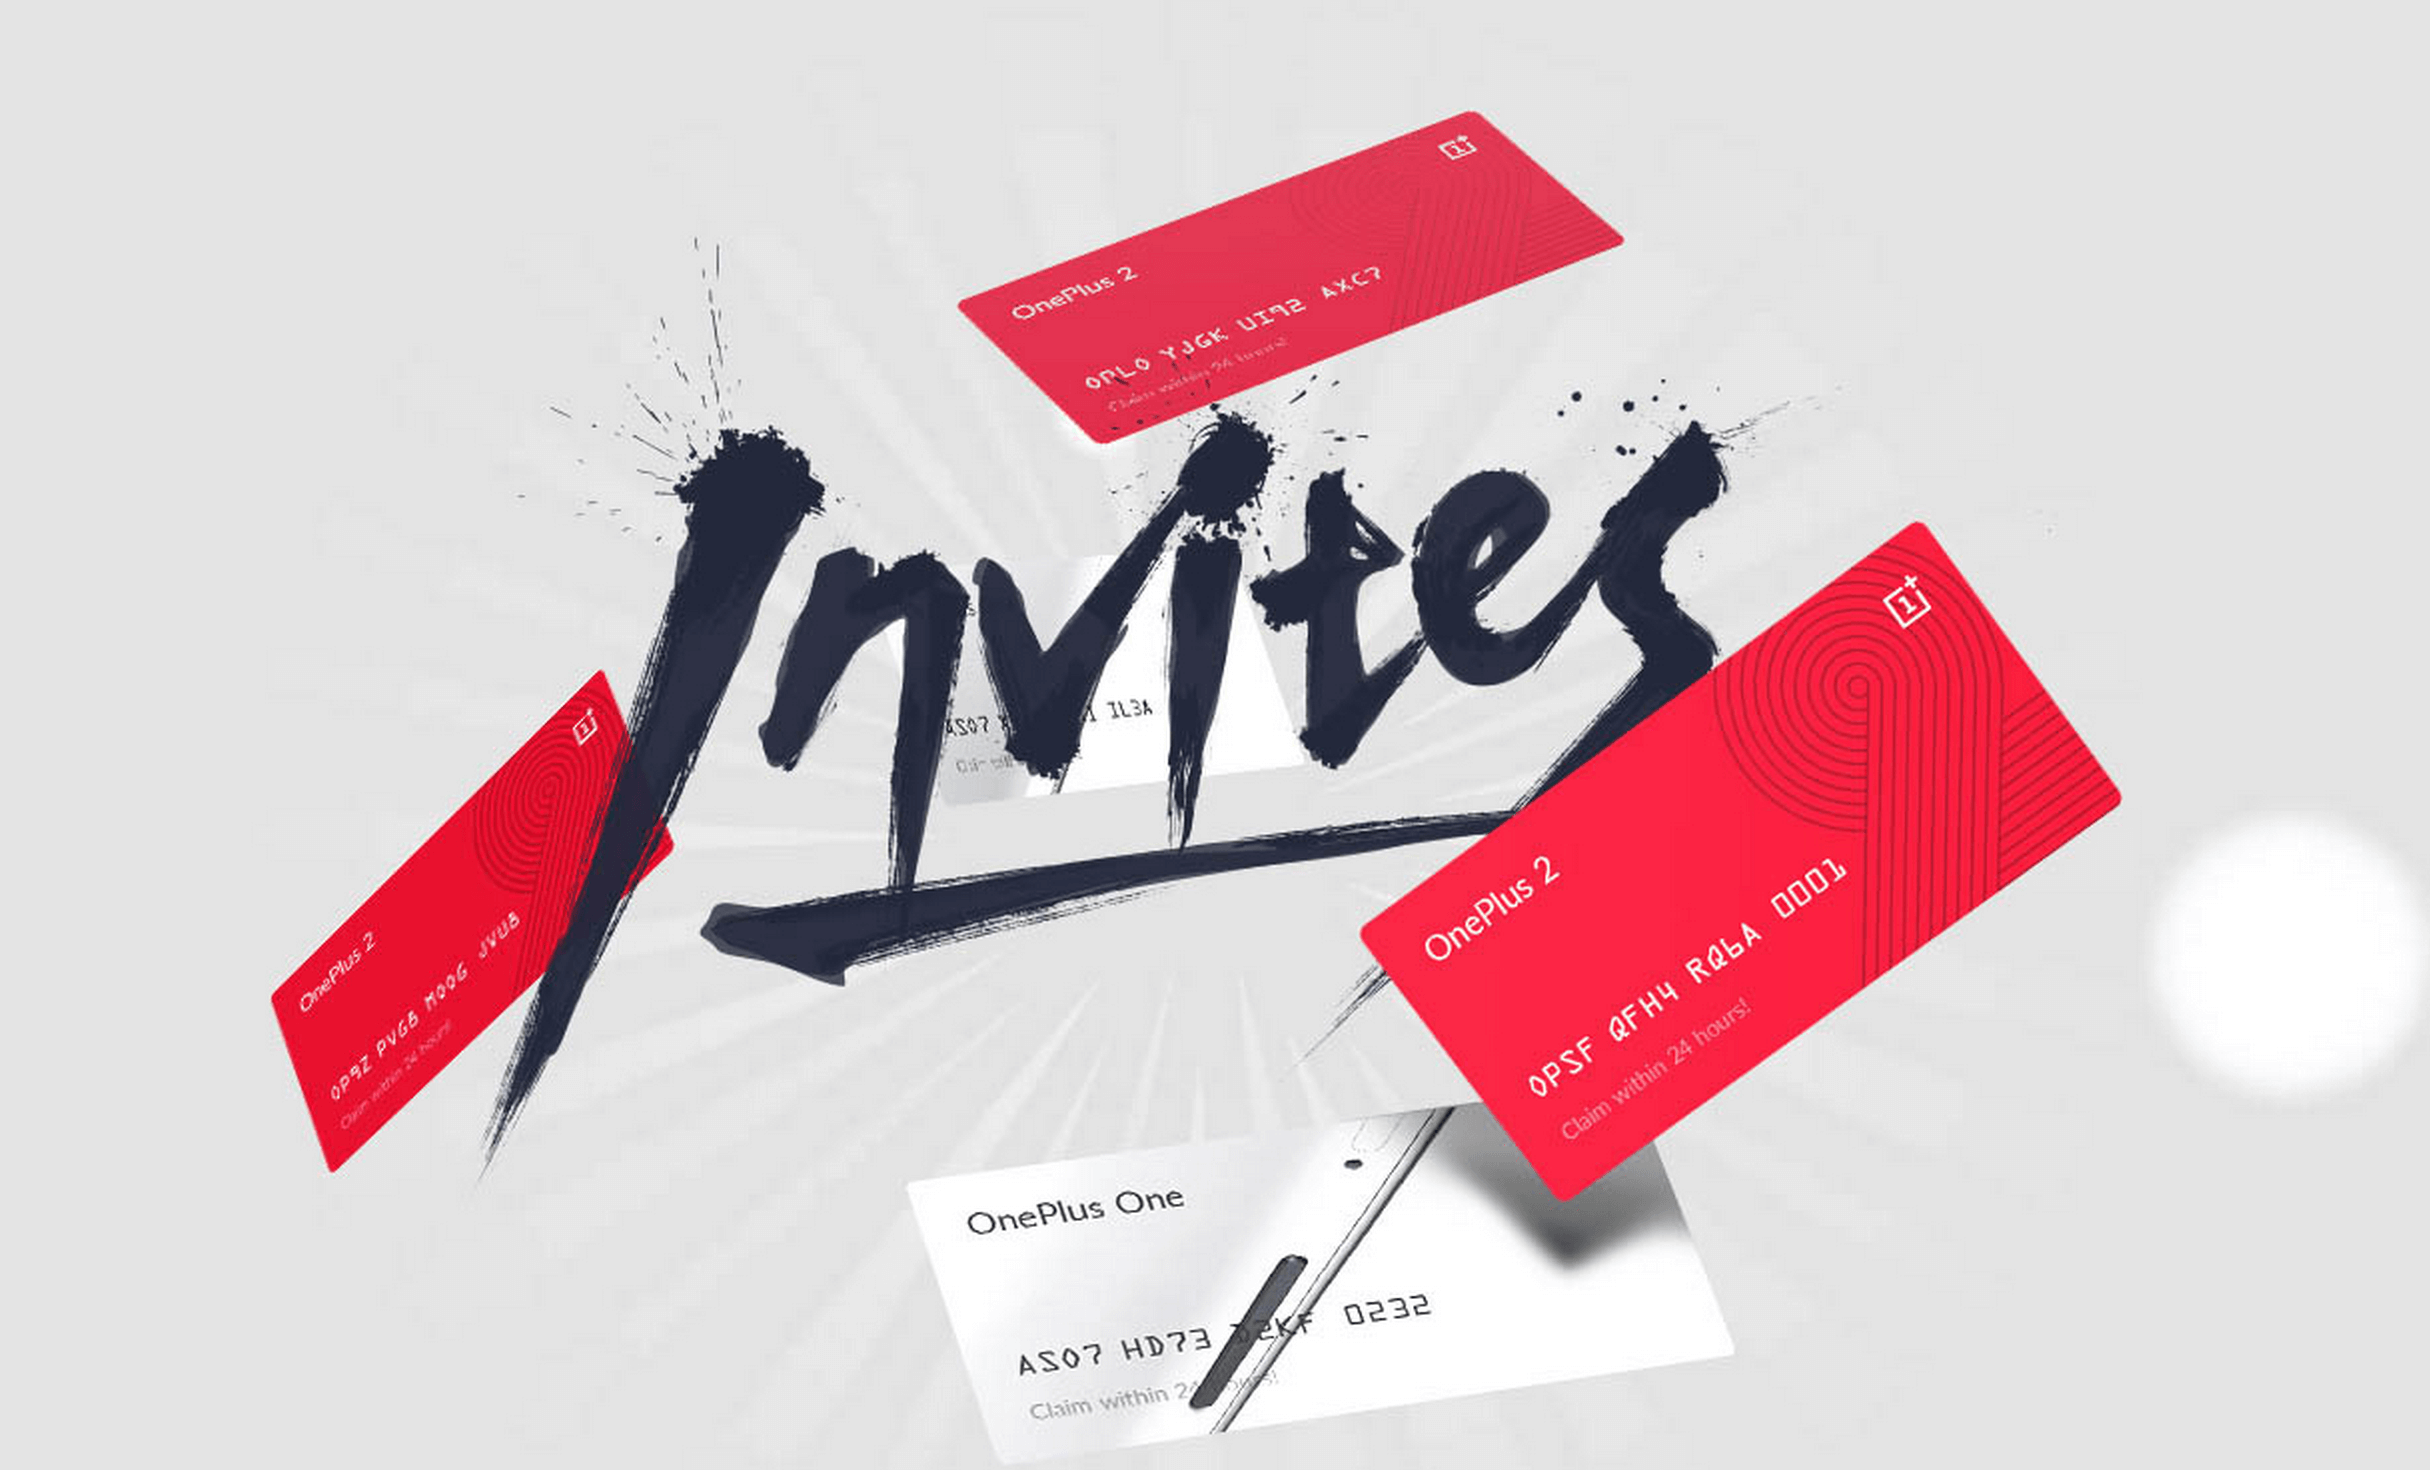 5 OnePlus Two Invites Giveaway!